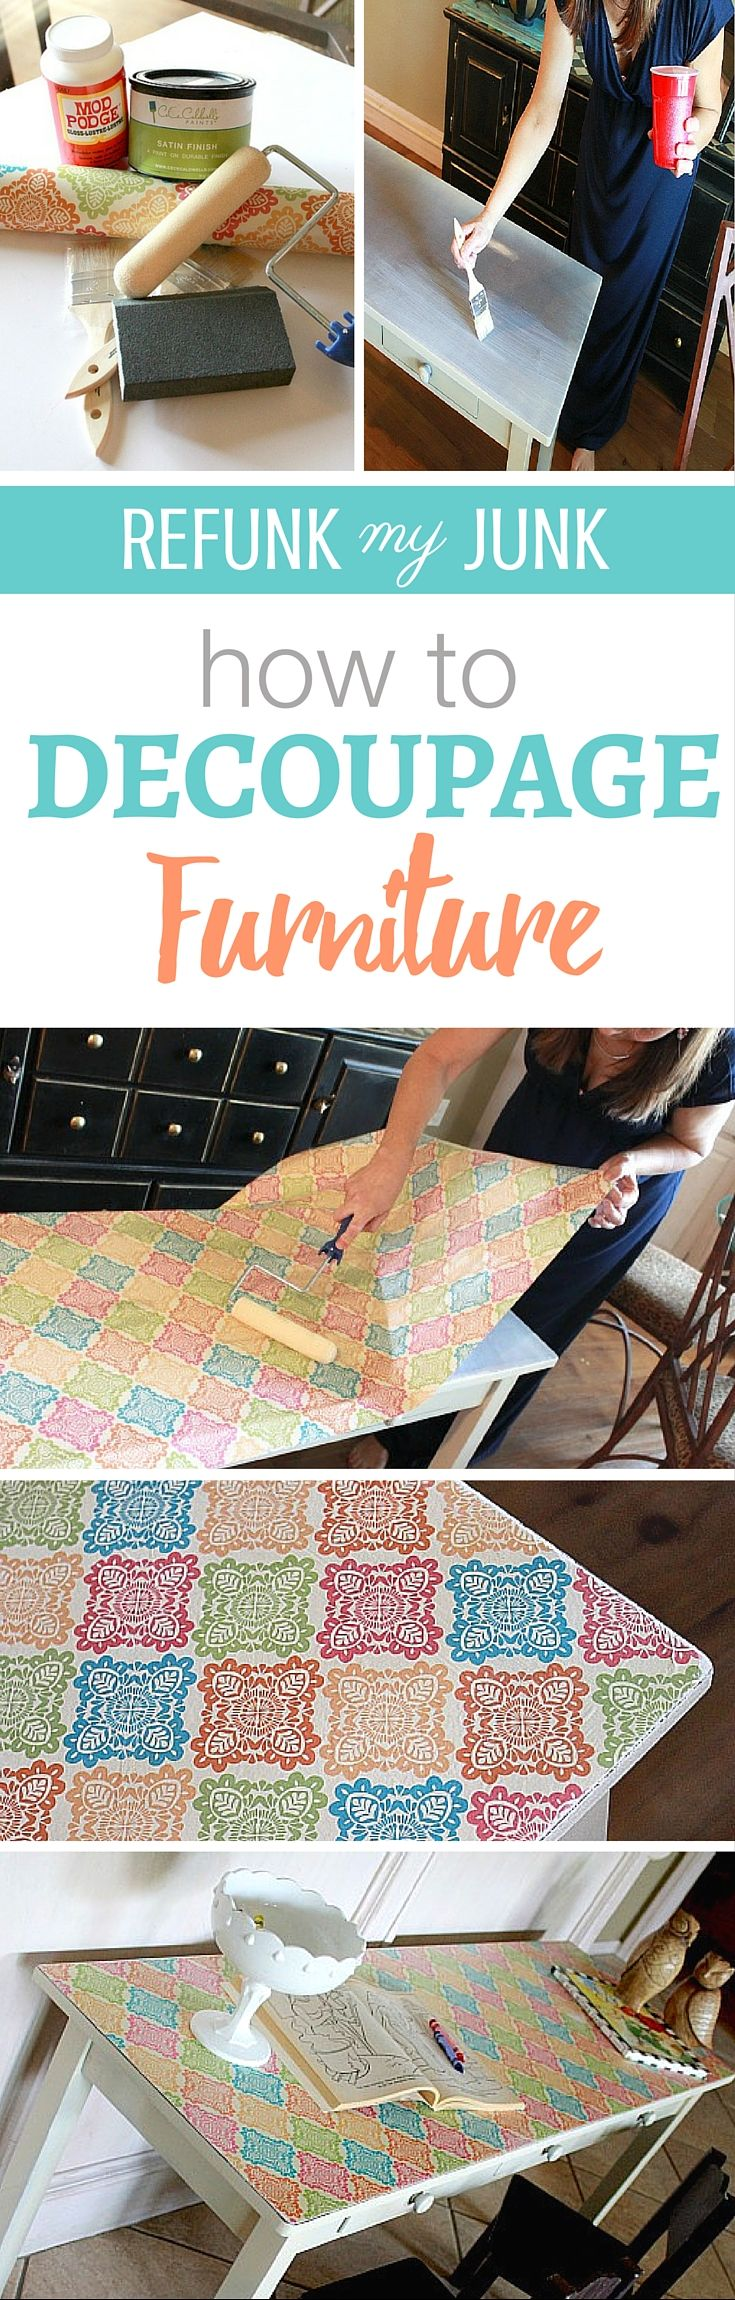 Diy Furniture Projects Best 20 Furniture Projects Ideas On Pinterest Diy House